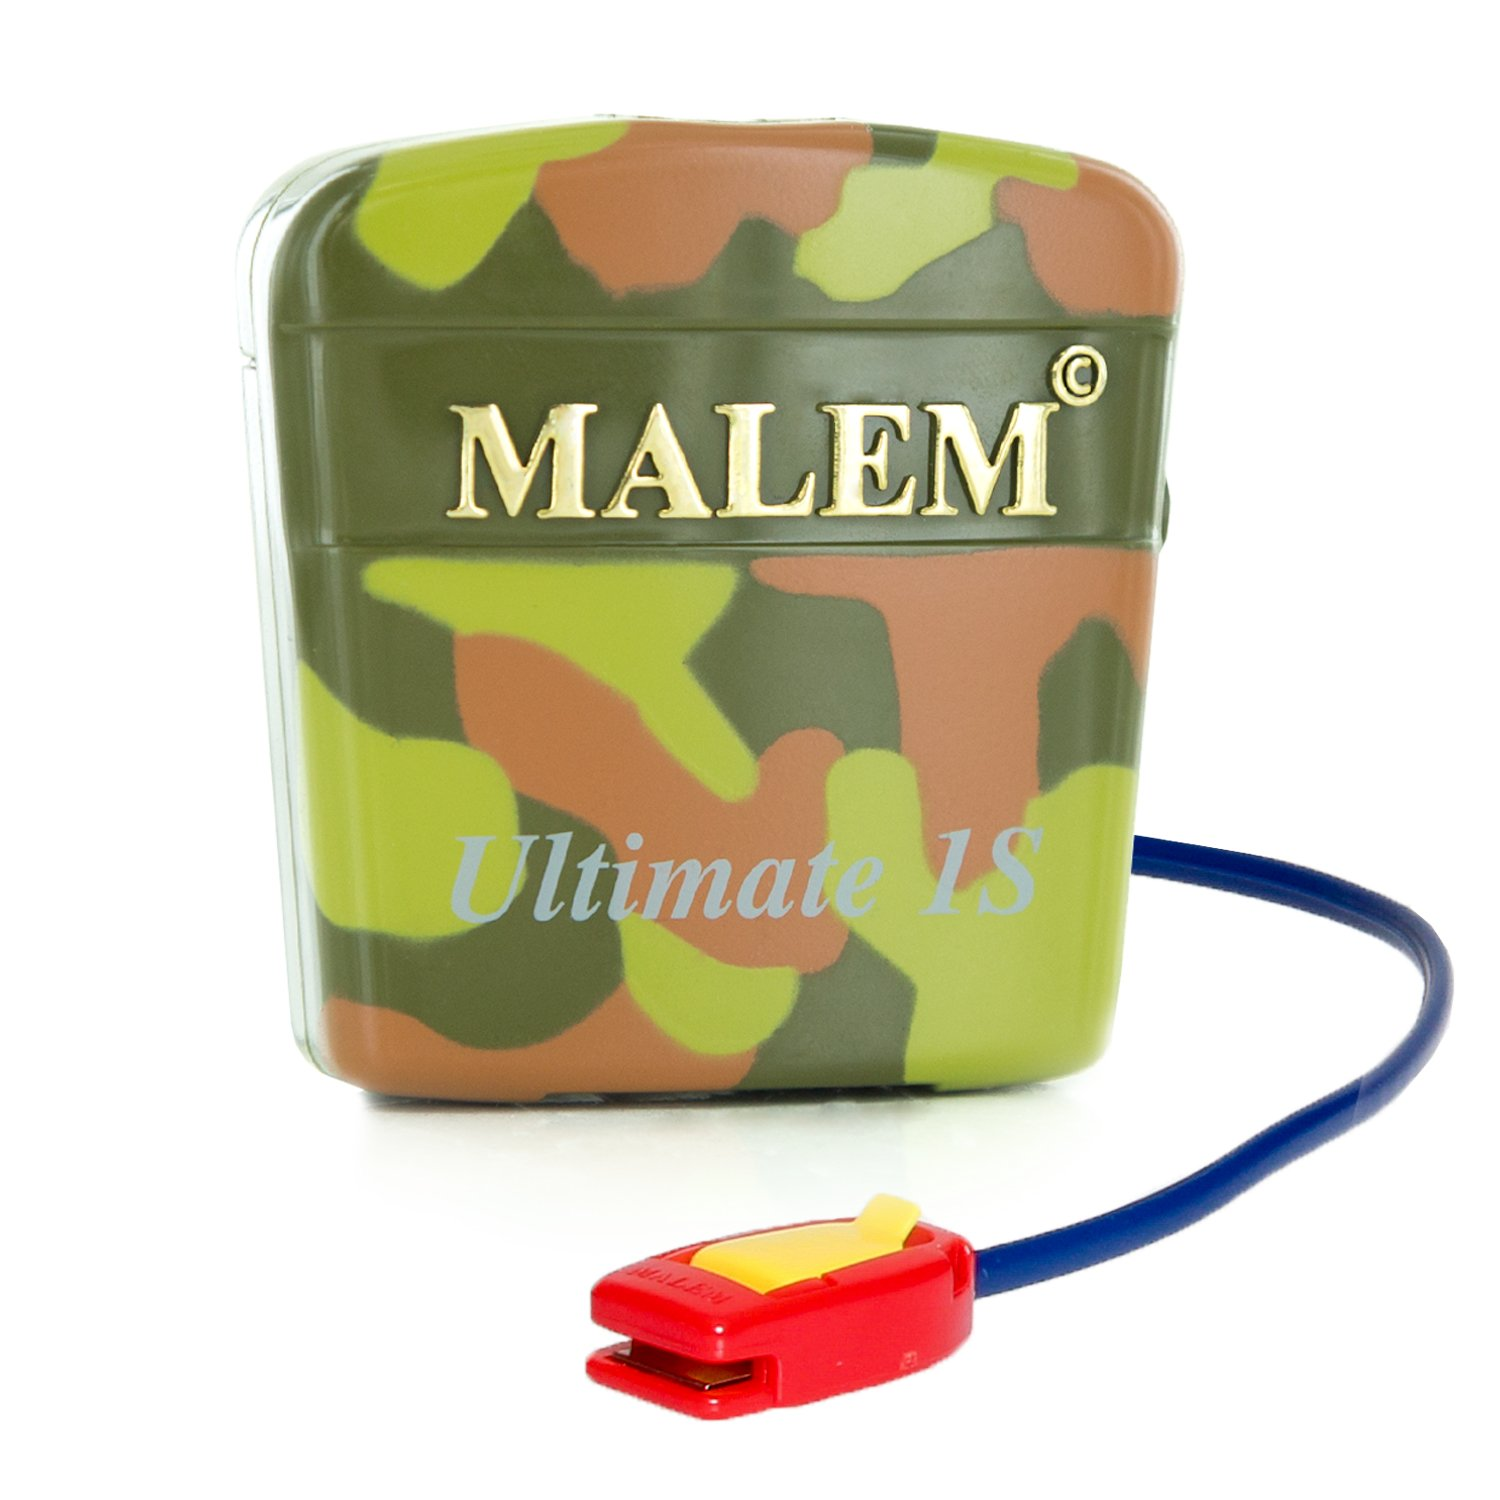 Malem Ultimate PRO Selectable CAMOUFLAGE Bedwetting Alarm with Vibration - Camouflage